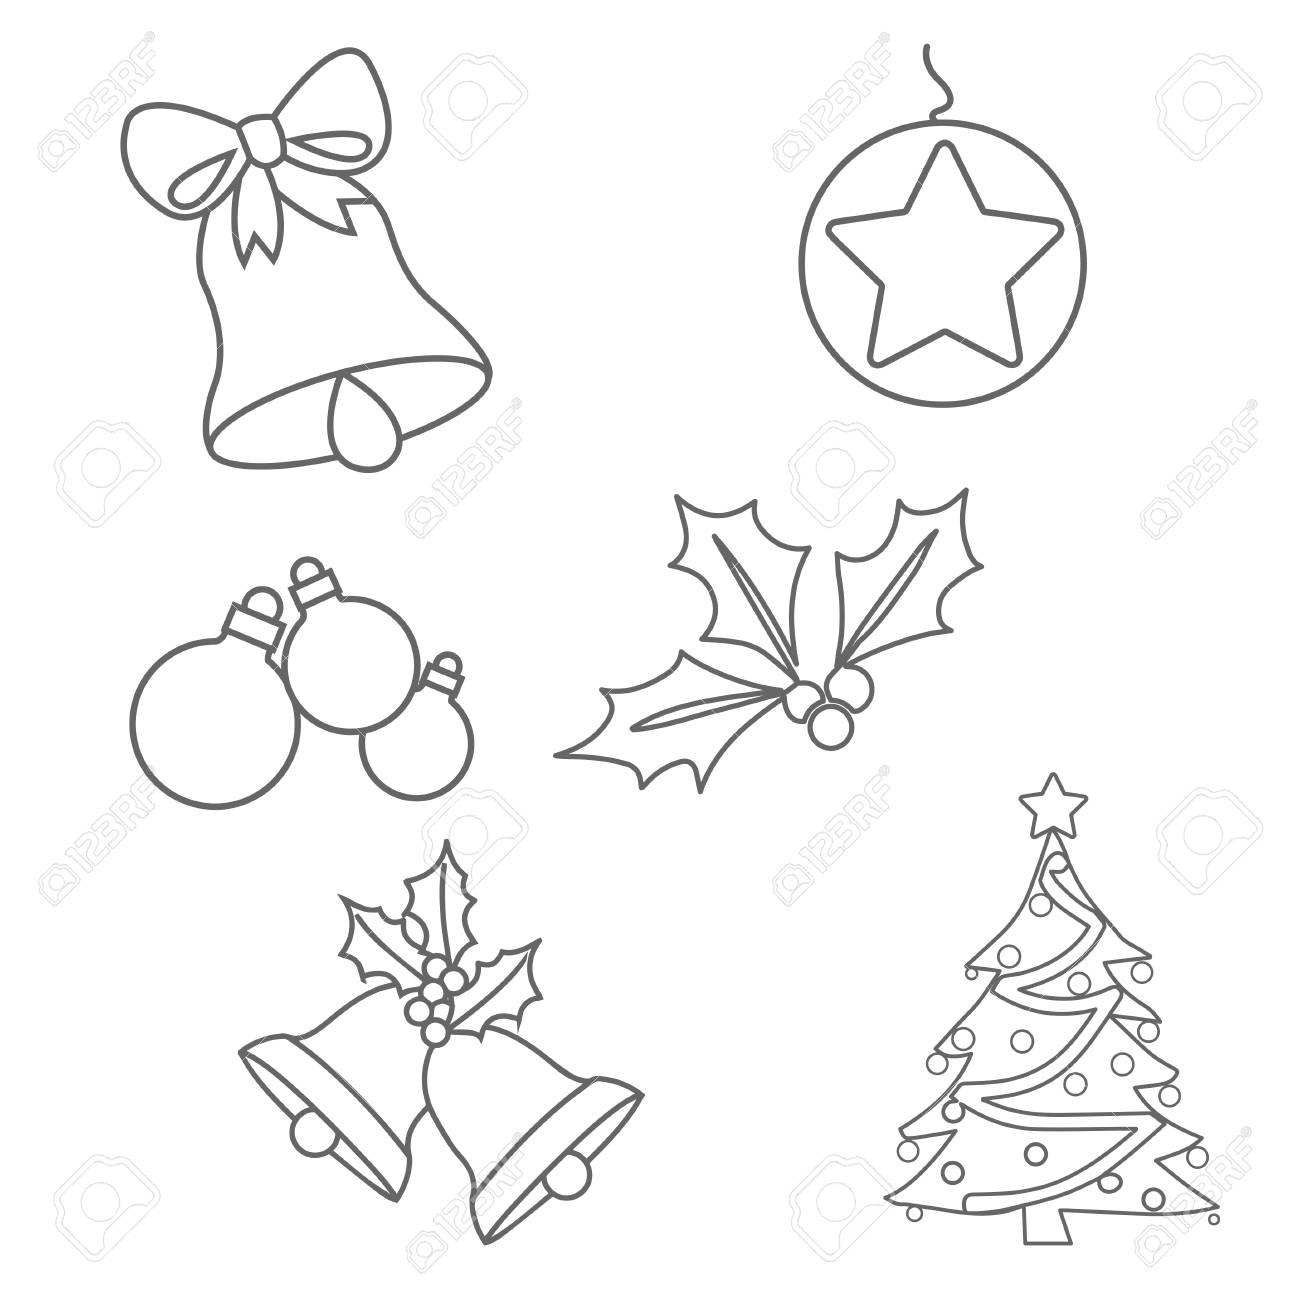 Christmas Ornaments Colouring Pages On White Background Royalty Free ...